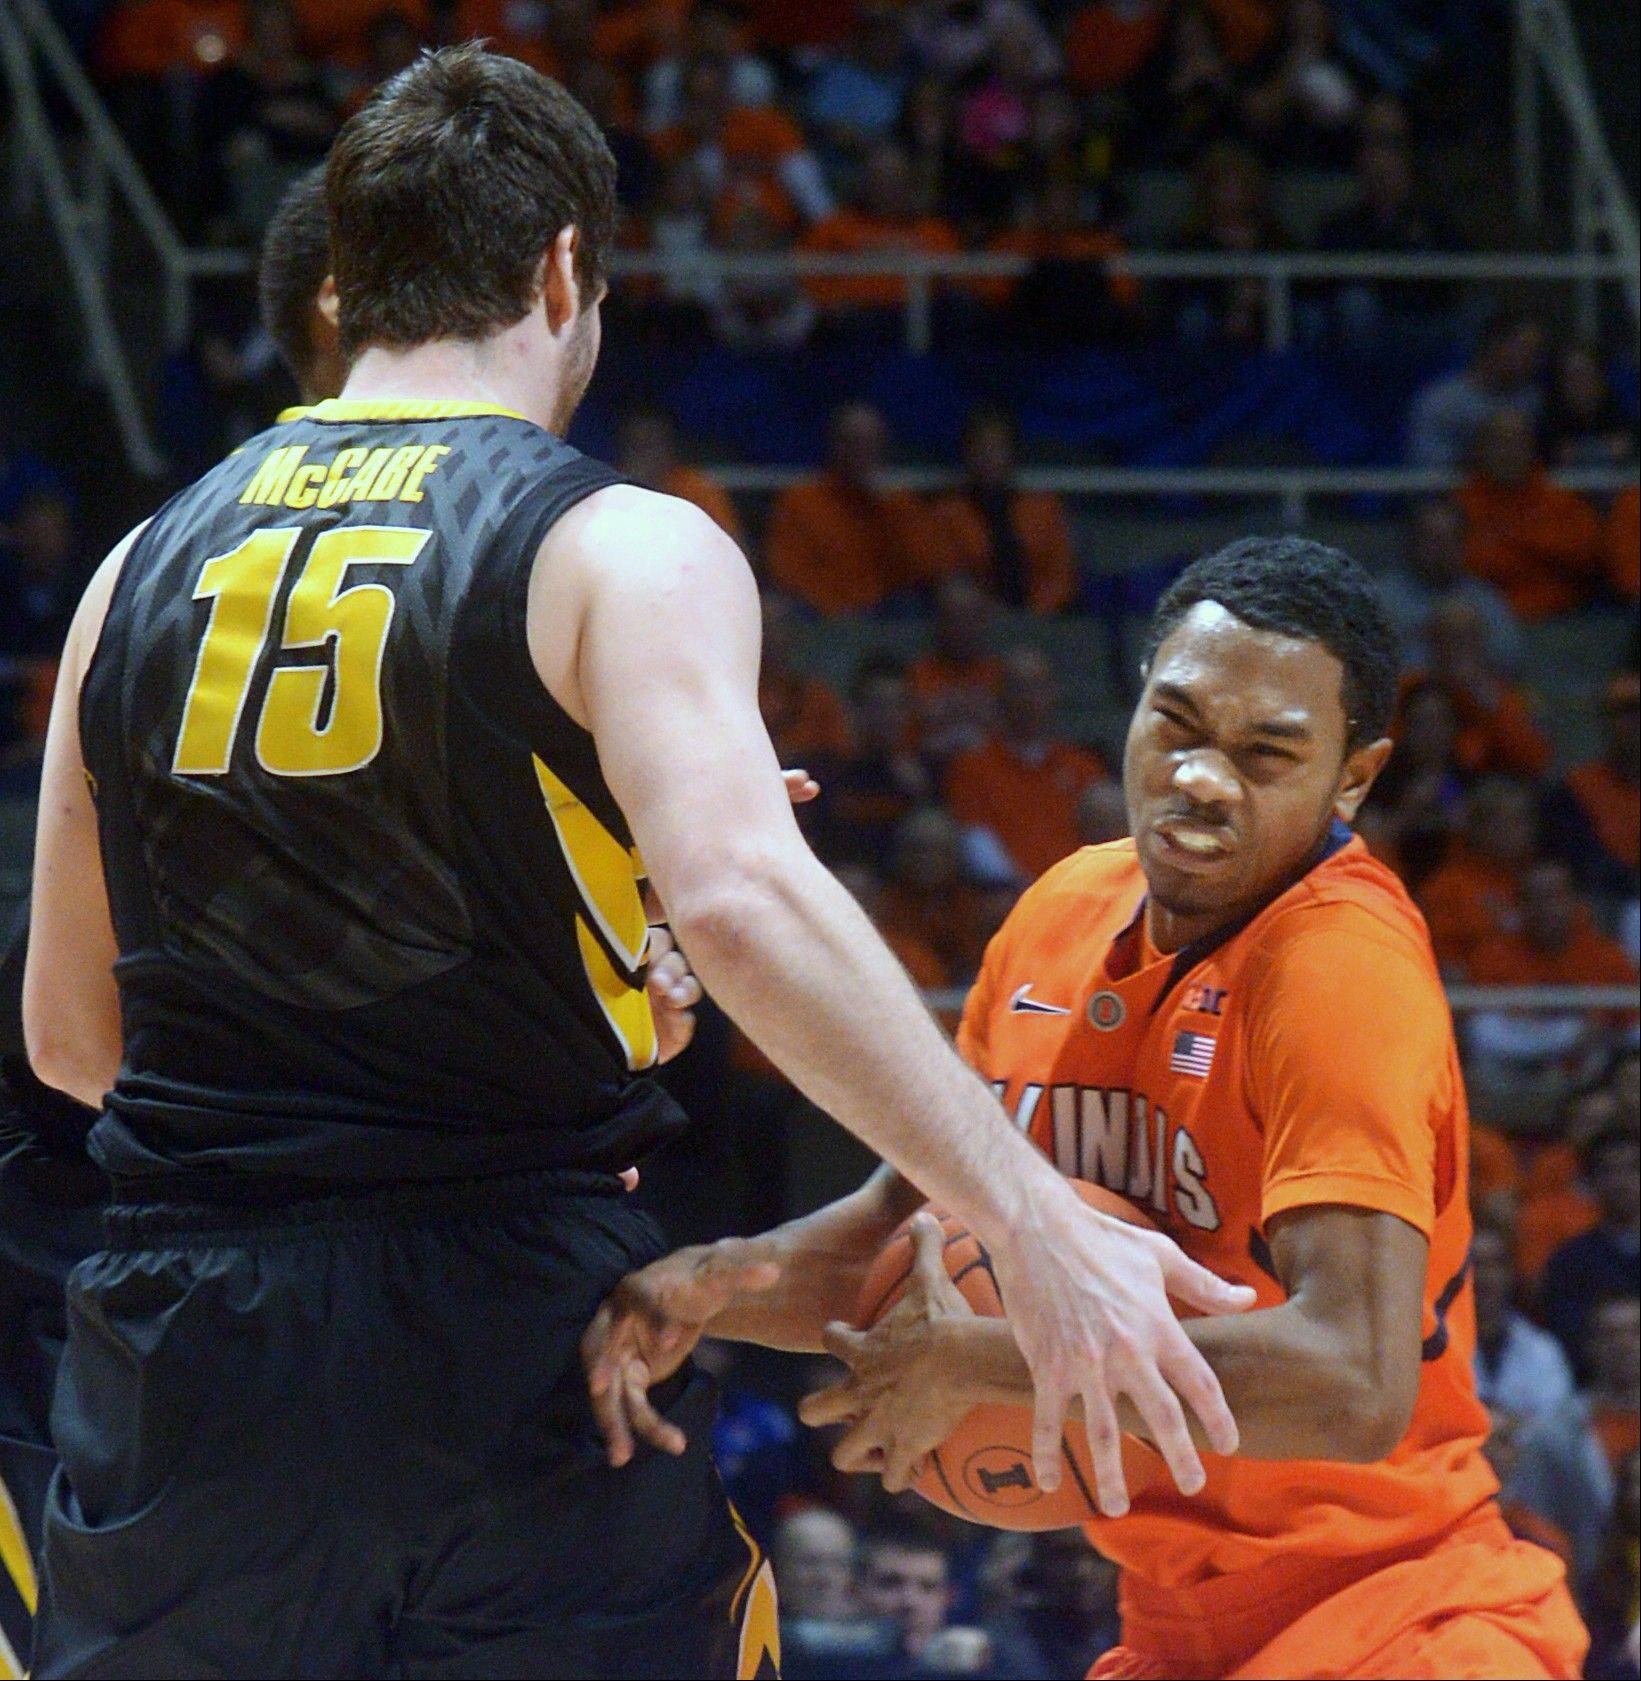 Illinois� Jaylon Tate (1) tries to keep the ball away from Iowa�s Zach McCabe (15) during Saturday night�s game in Champaign. The Illini lost 81-74.